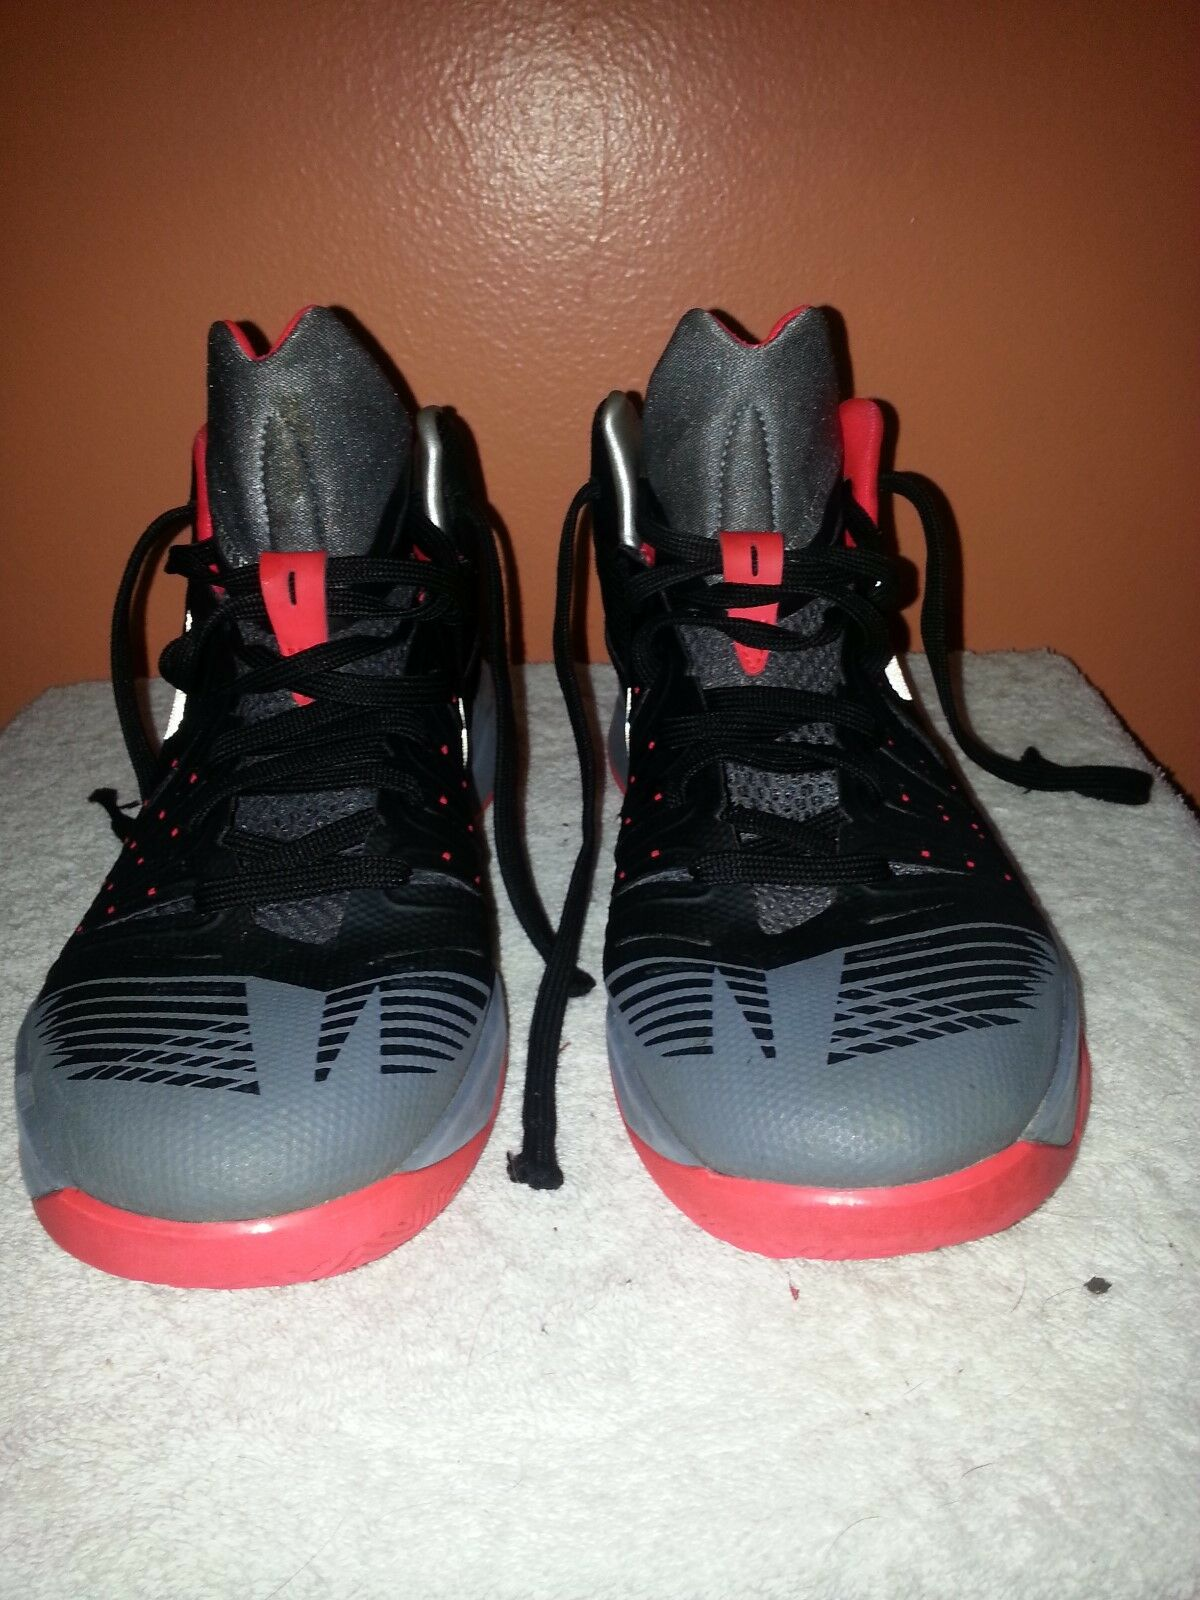 3b8f74af9 Pre-owned Nike Zoom I Get Buckets Men s Basketball Basketball Basketball  Shoe Size 9 643300-002 744195